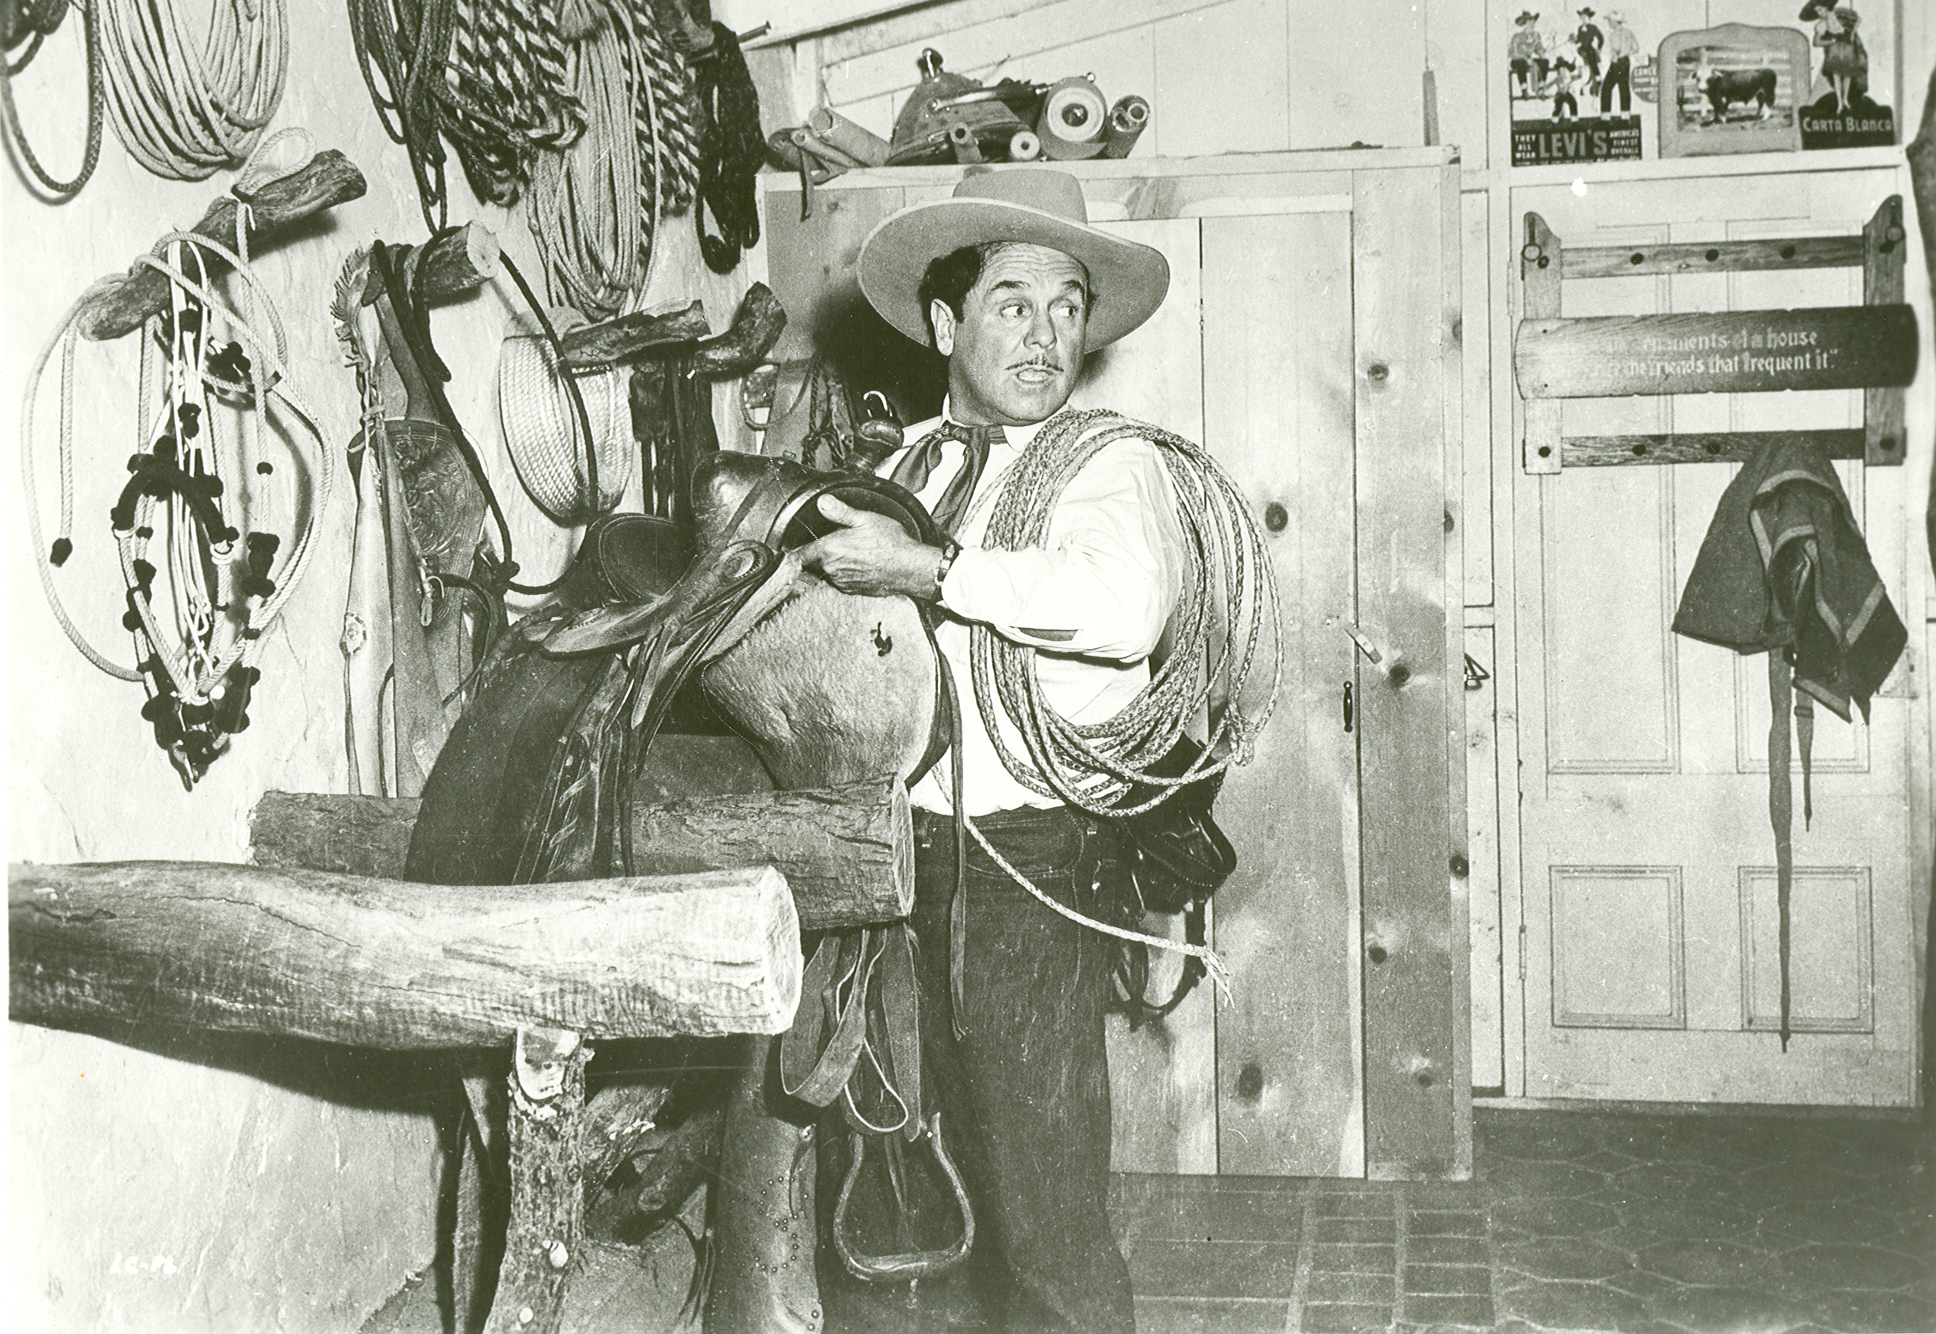 Hollywood westerns and Levi's